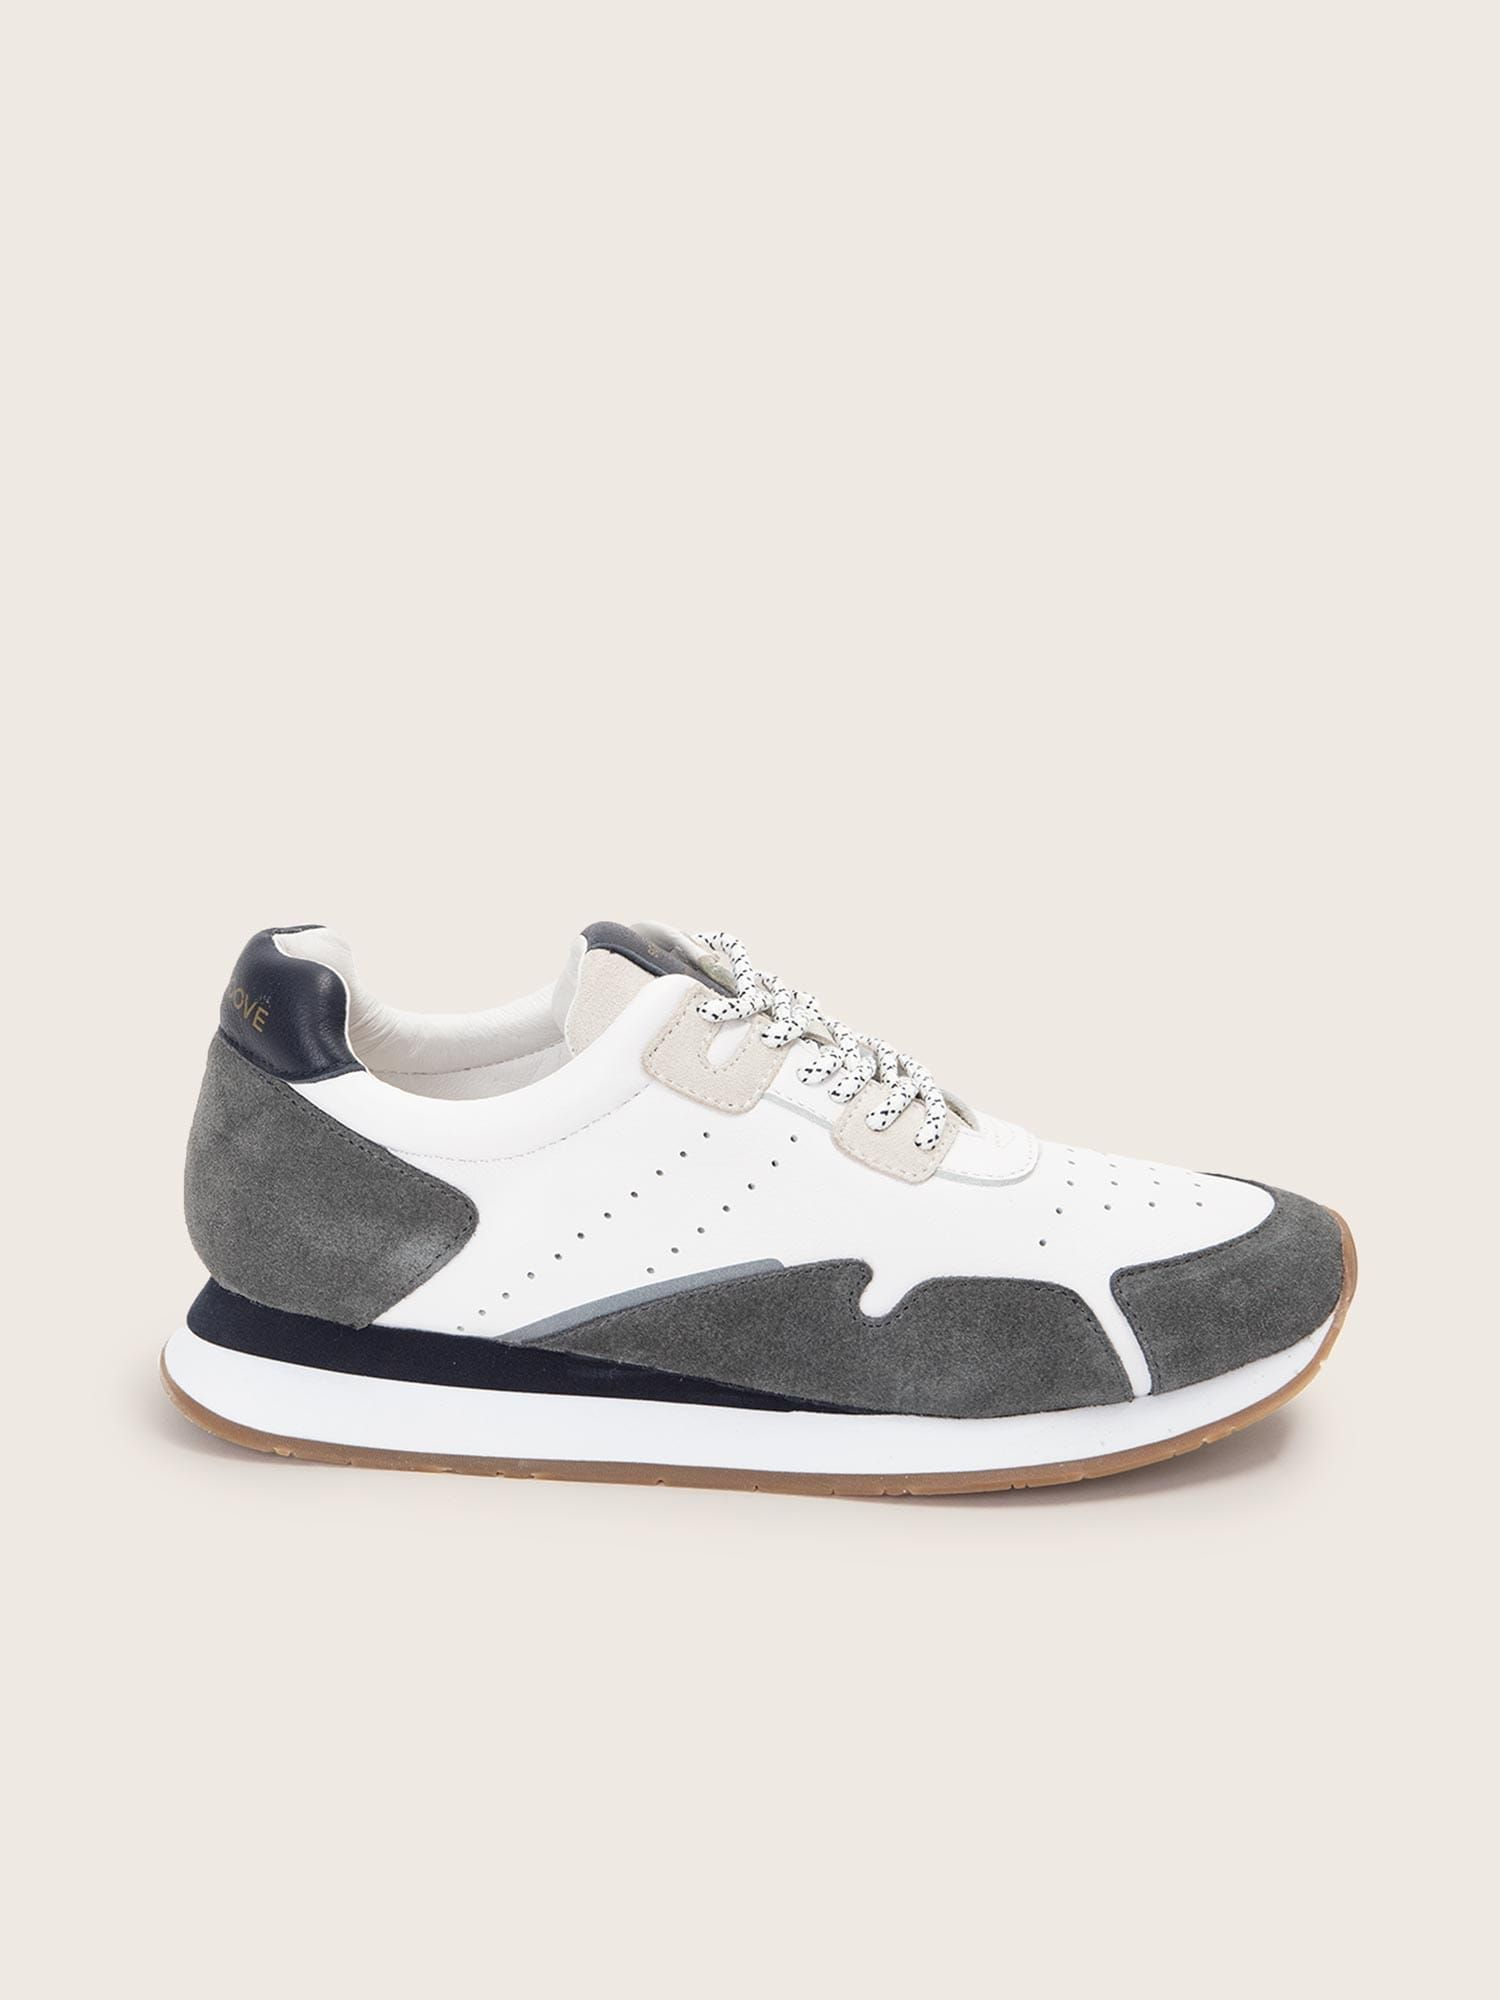 schmoove.fr TRAIL JOGGER - SUEDE/NAPPA - CENDRE/NAVY